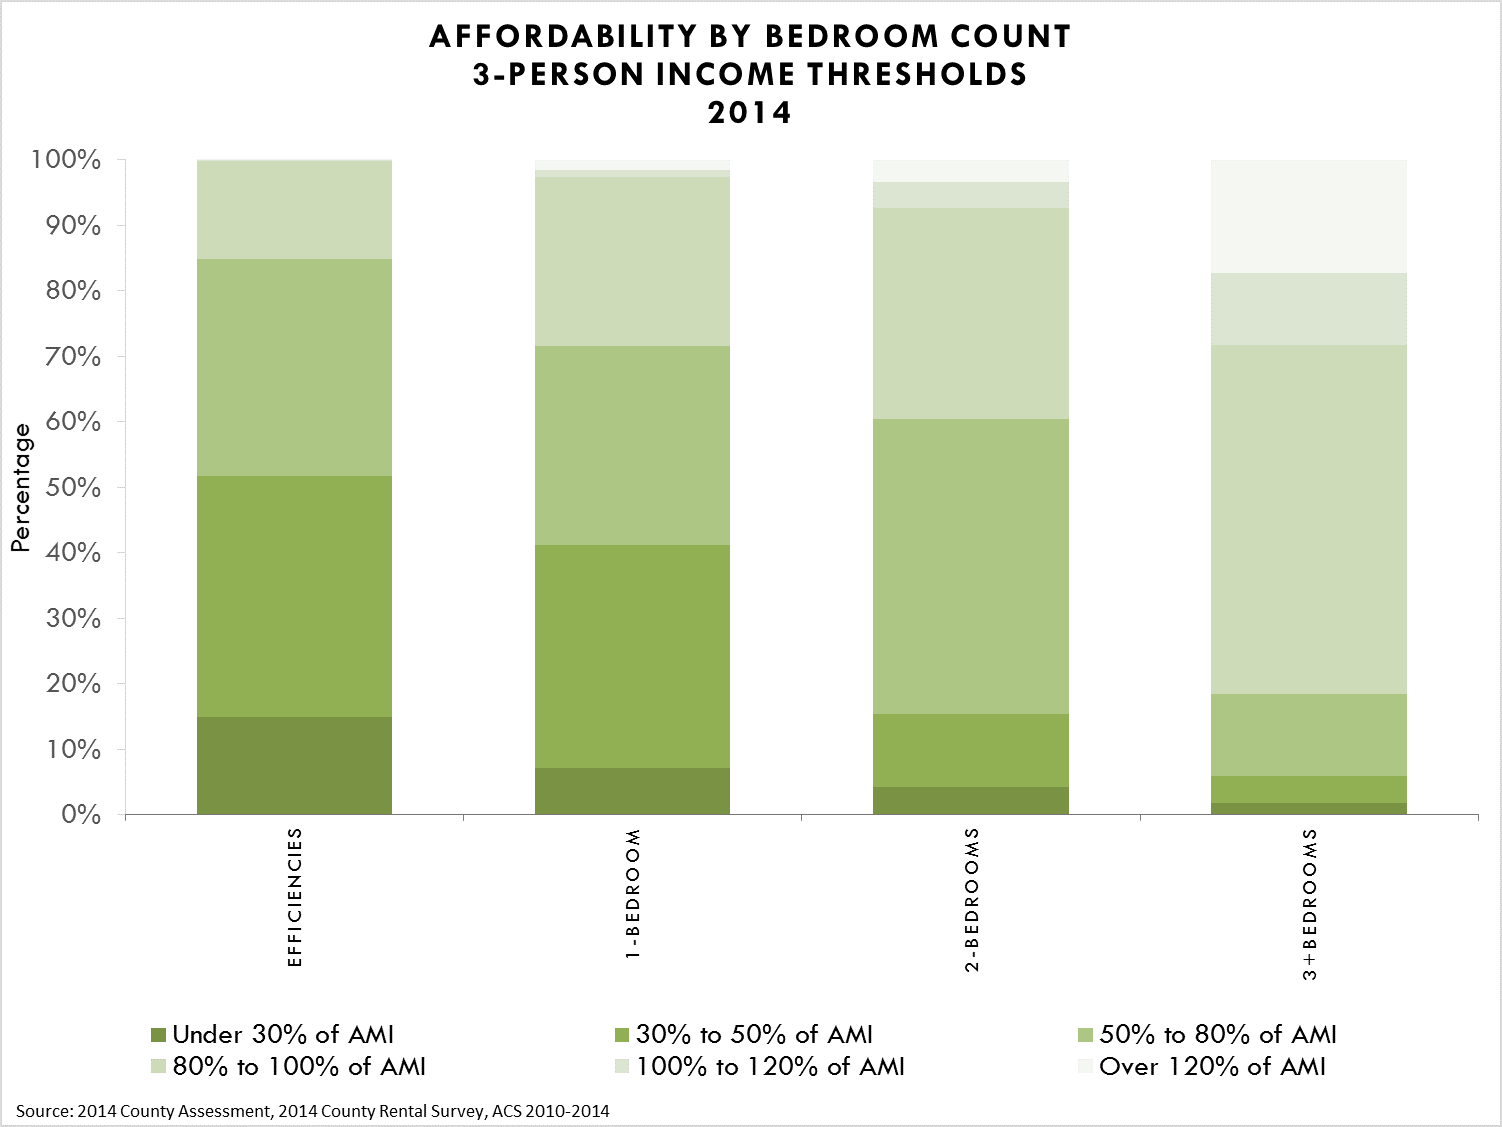 Affordability by Bedroom Count, 3-Person Income Thresholds